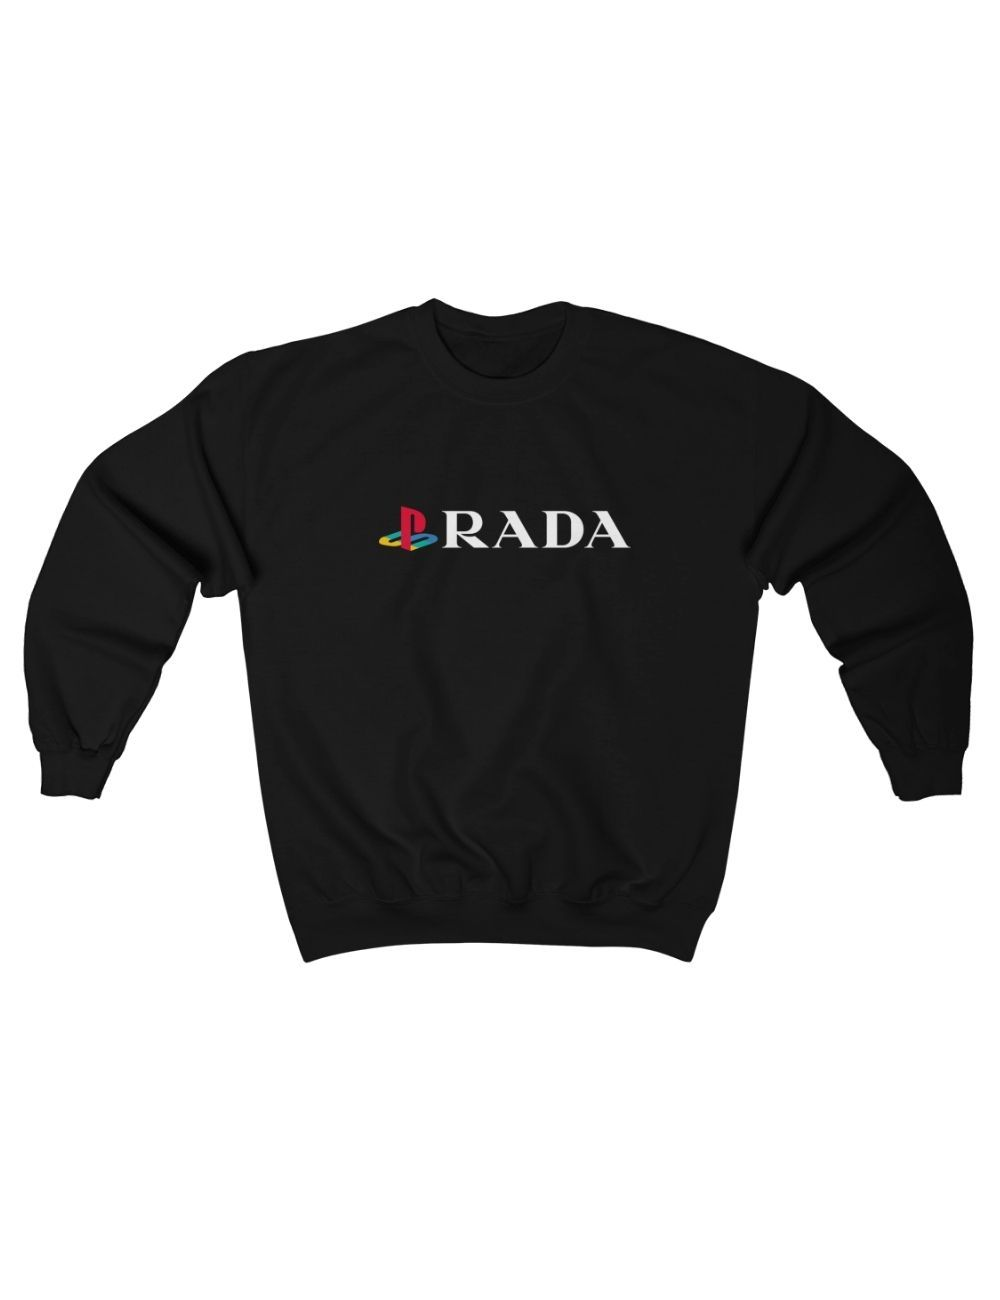 Clothing - Hipland PlayStation / Prada Logo Unisex Sweatshirt In Black